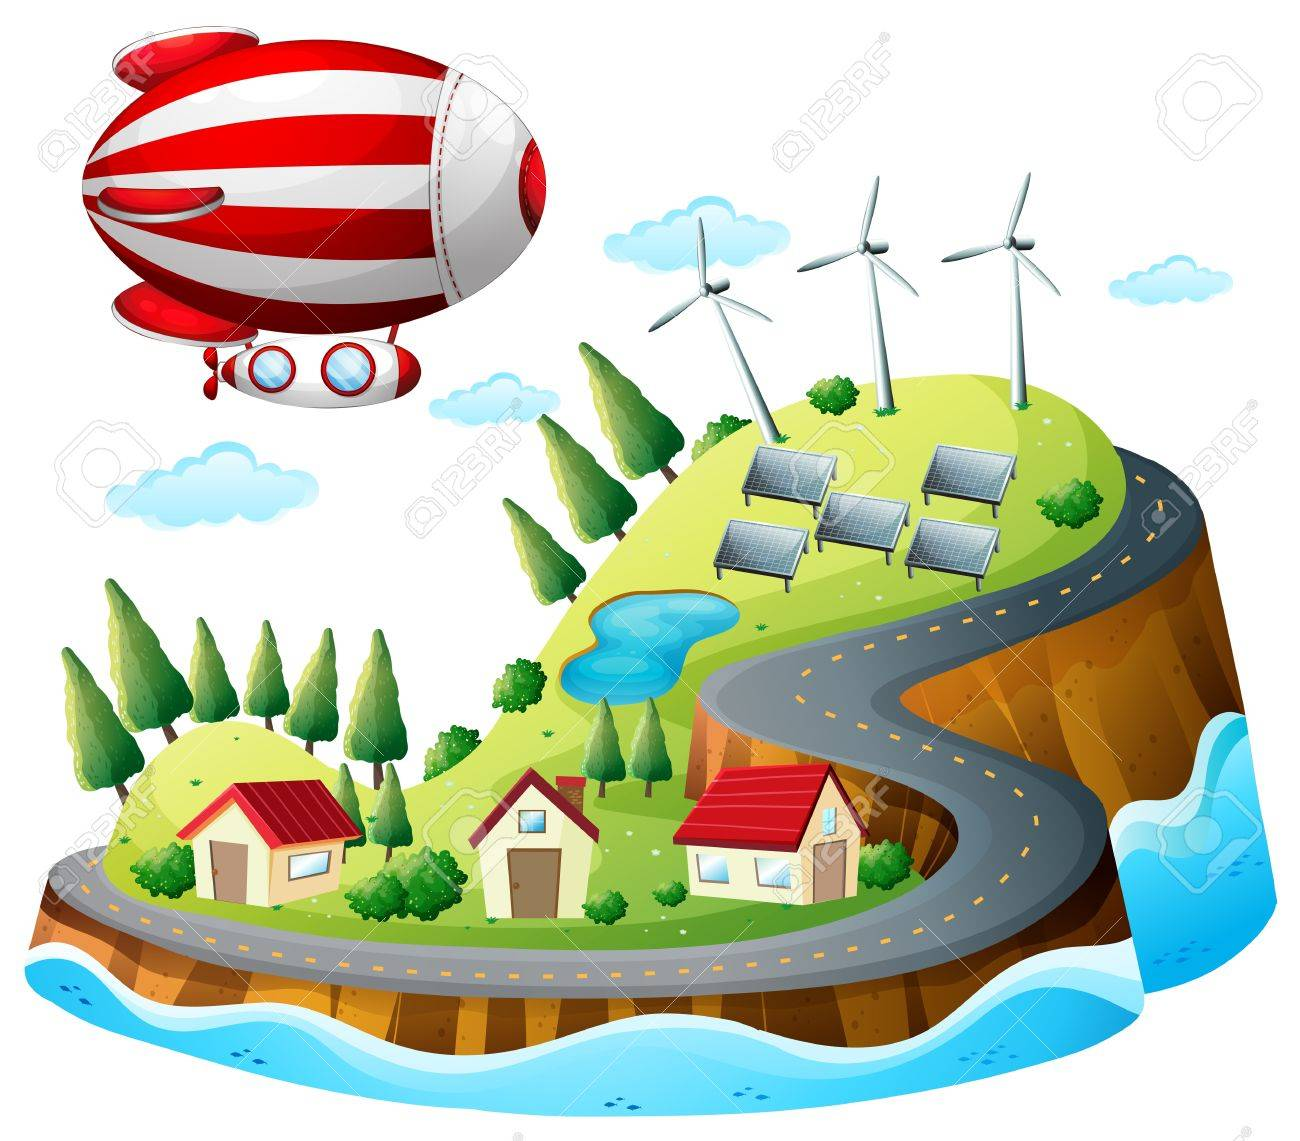 Illustration of a village with an airship above on a white background Stock Vector - 18210334